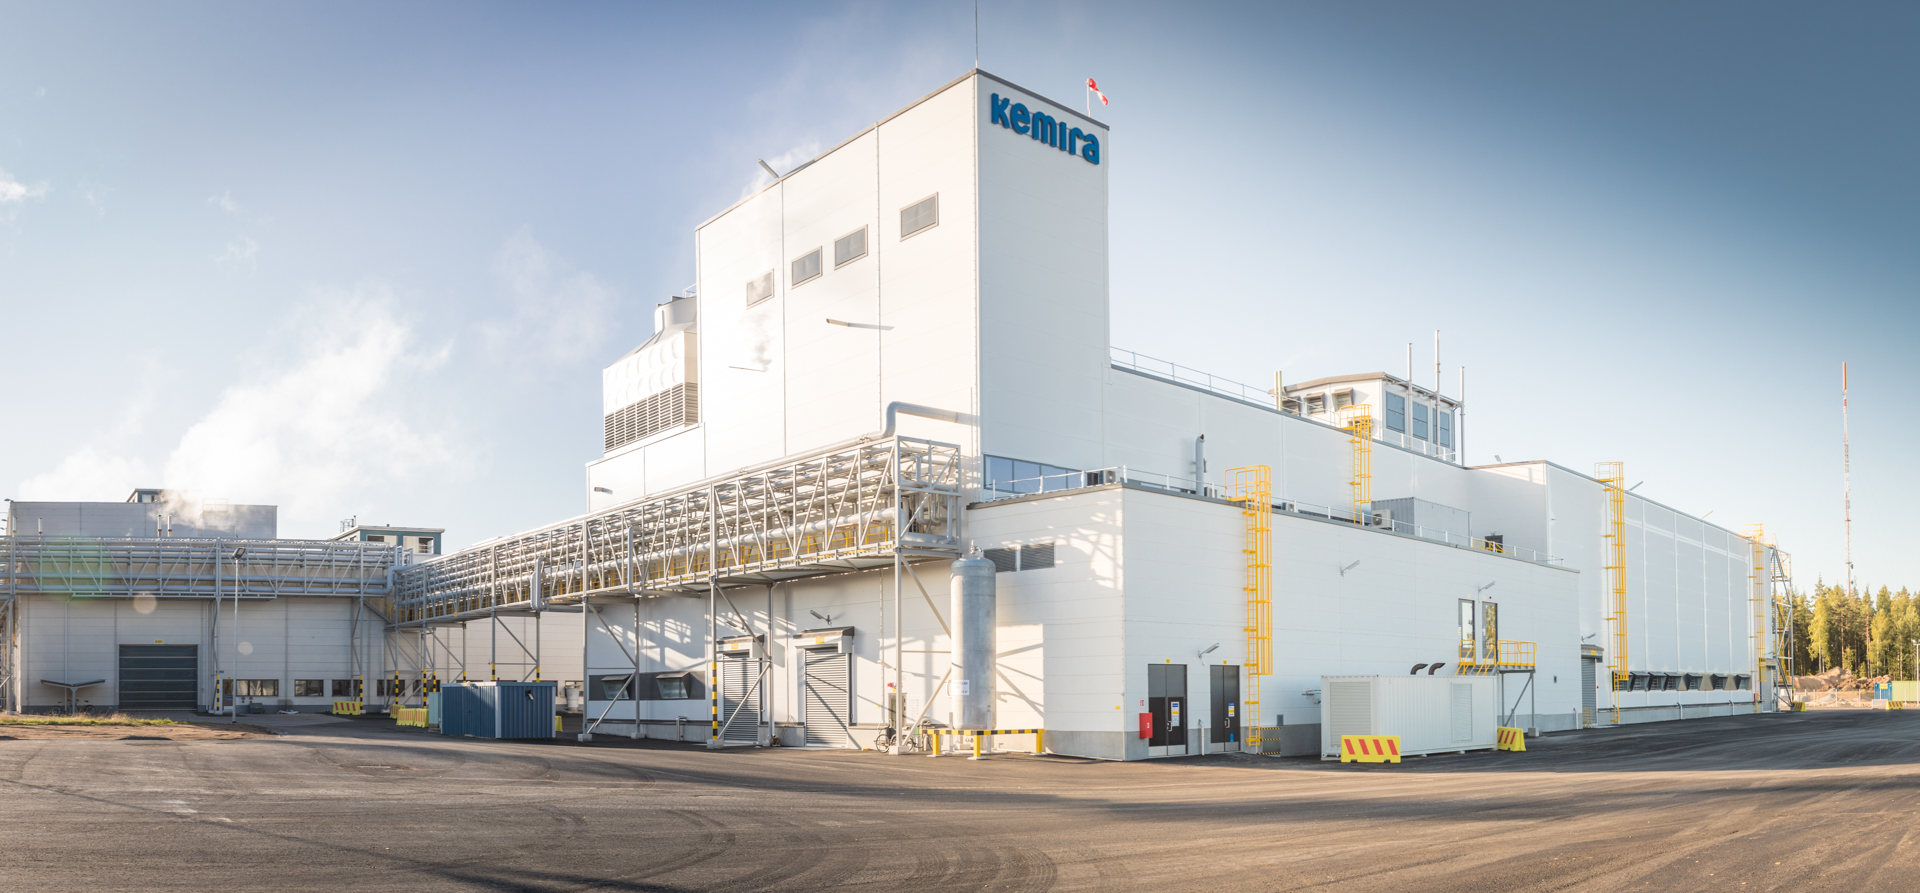 Valmet will supply an energy management solution to optimize production and energy consumption at Kemira Chemicals' bleaching chemical plants in Äetsä and Joutseno in Finland.